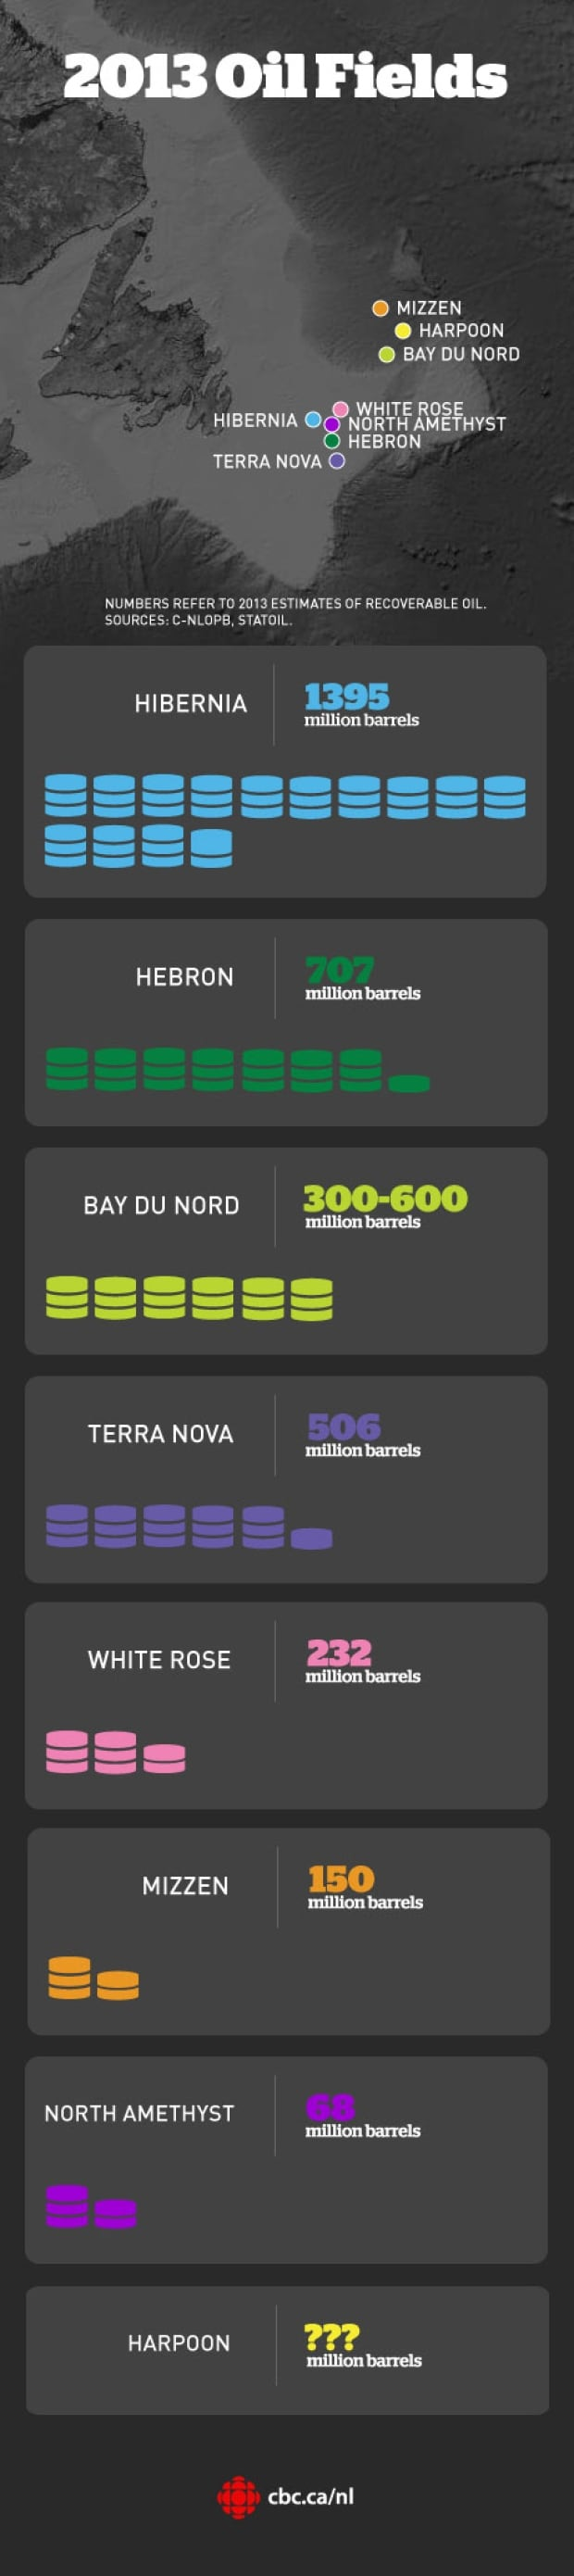 Infographic of 2013 Oil Fields